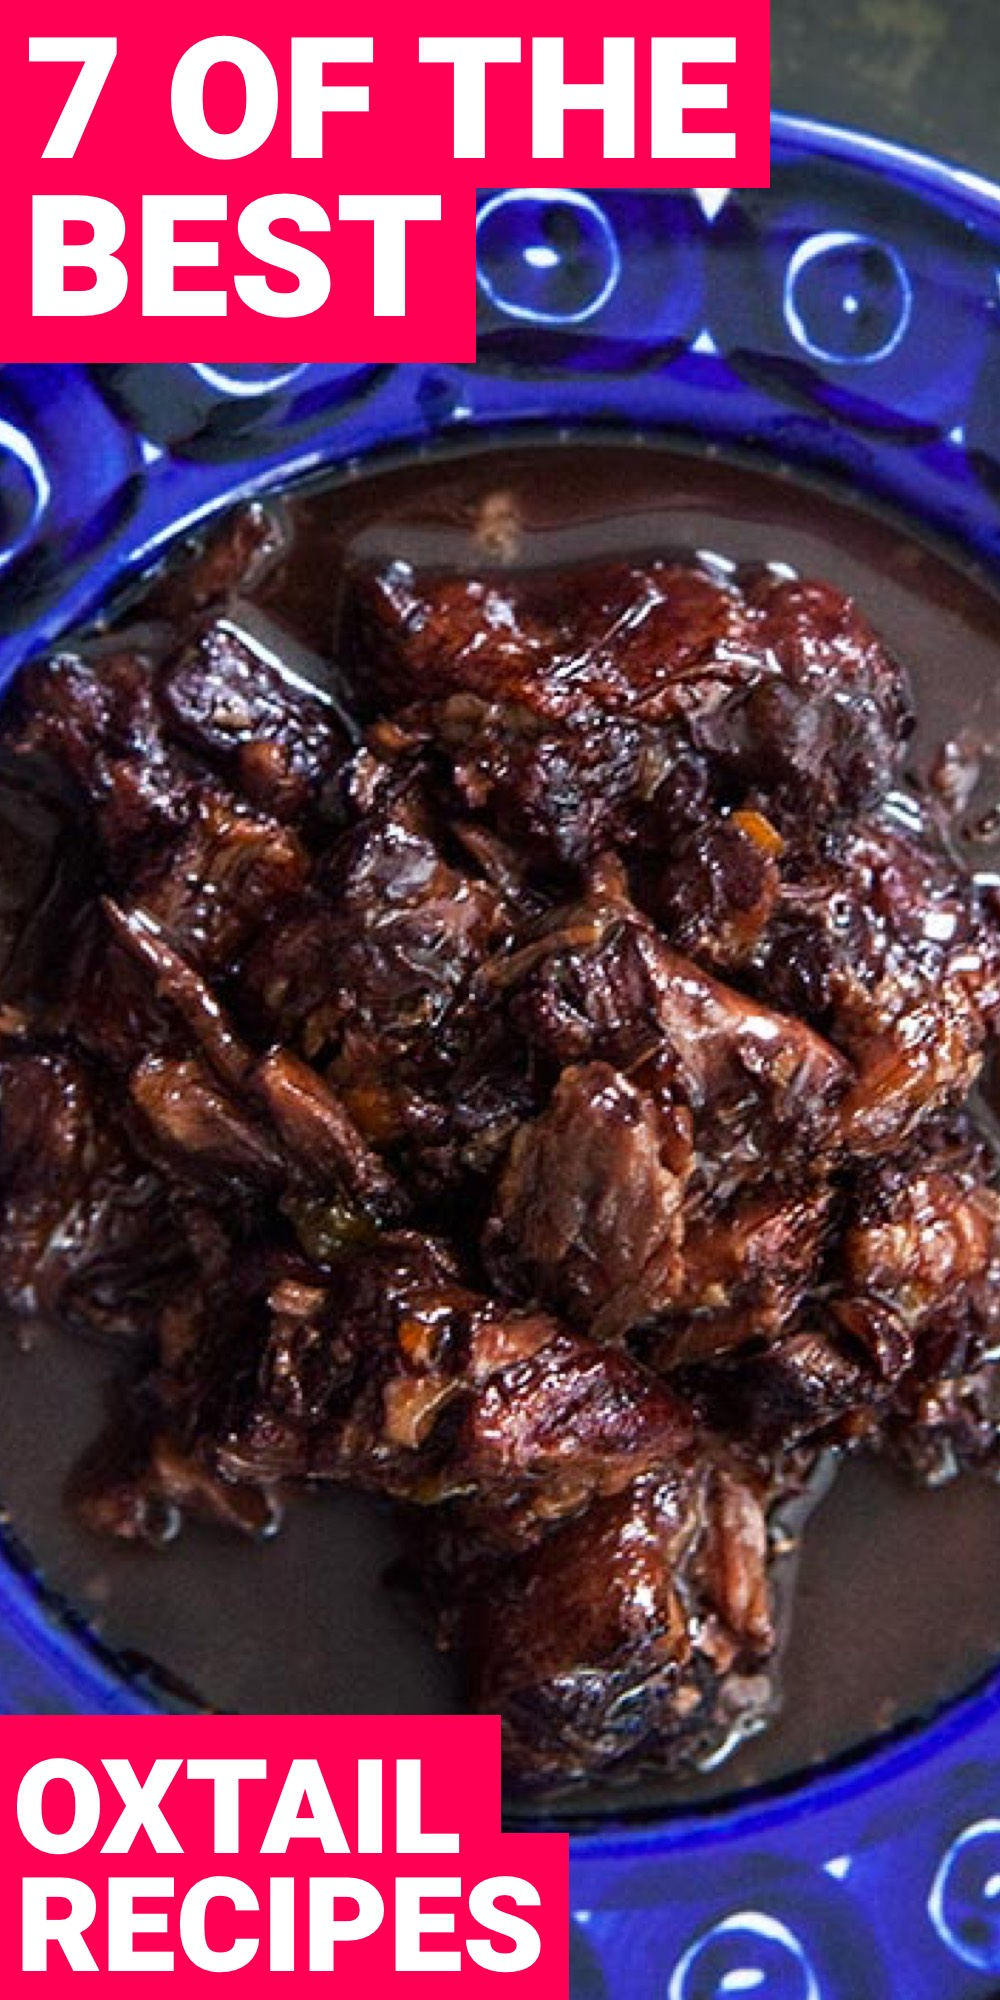 Oxtail is different but delicious. Here are 7 oxtail recipes you need to try now.